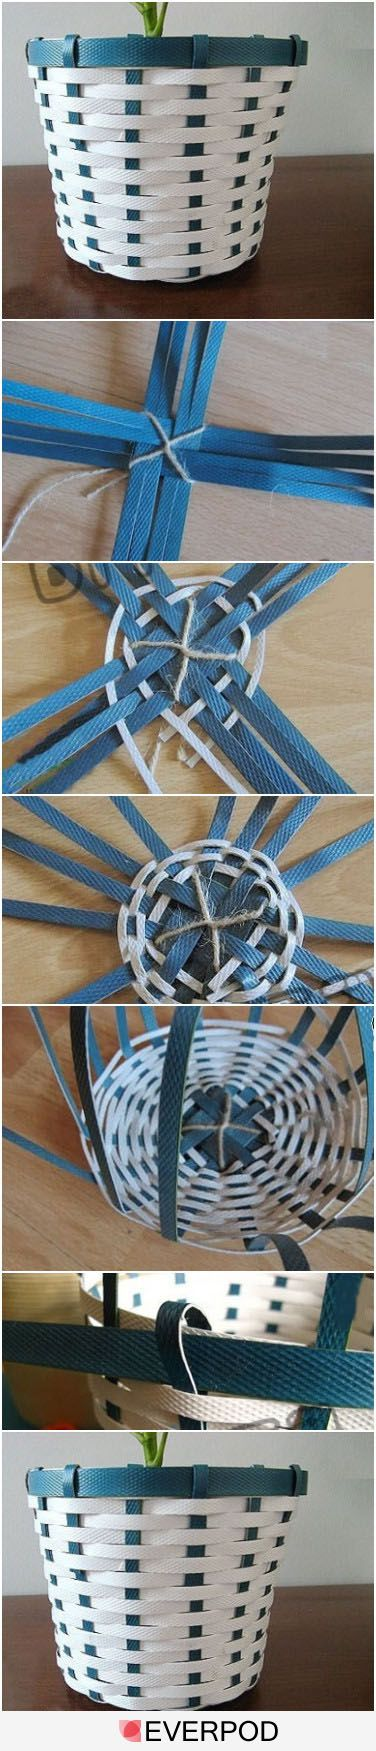 #DIY #basket